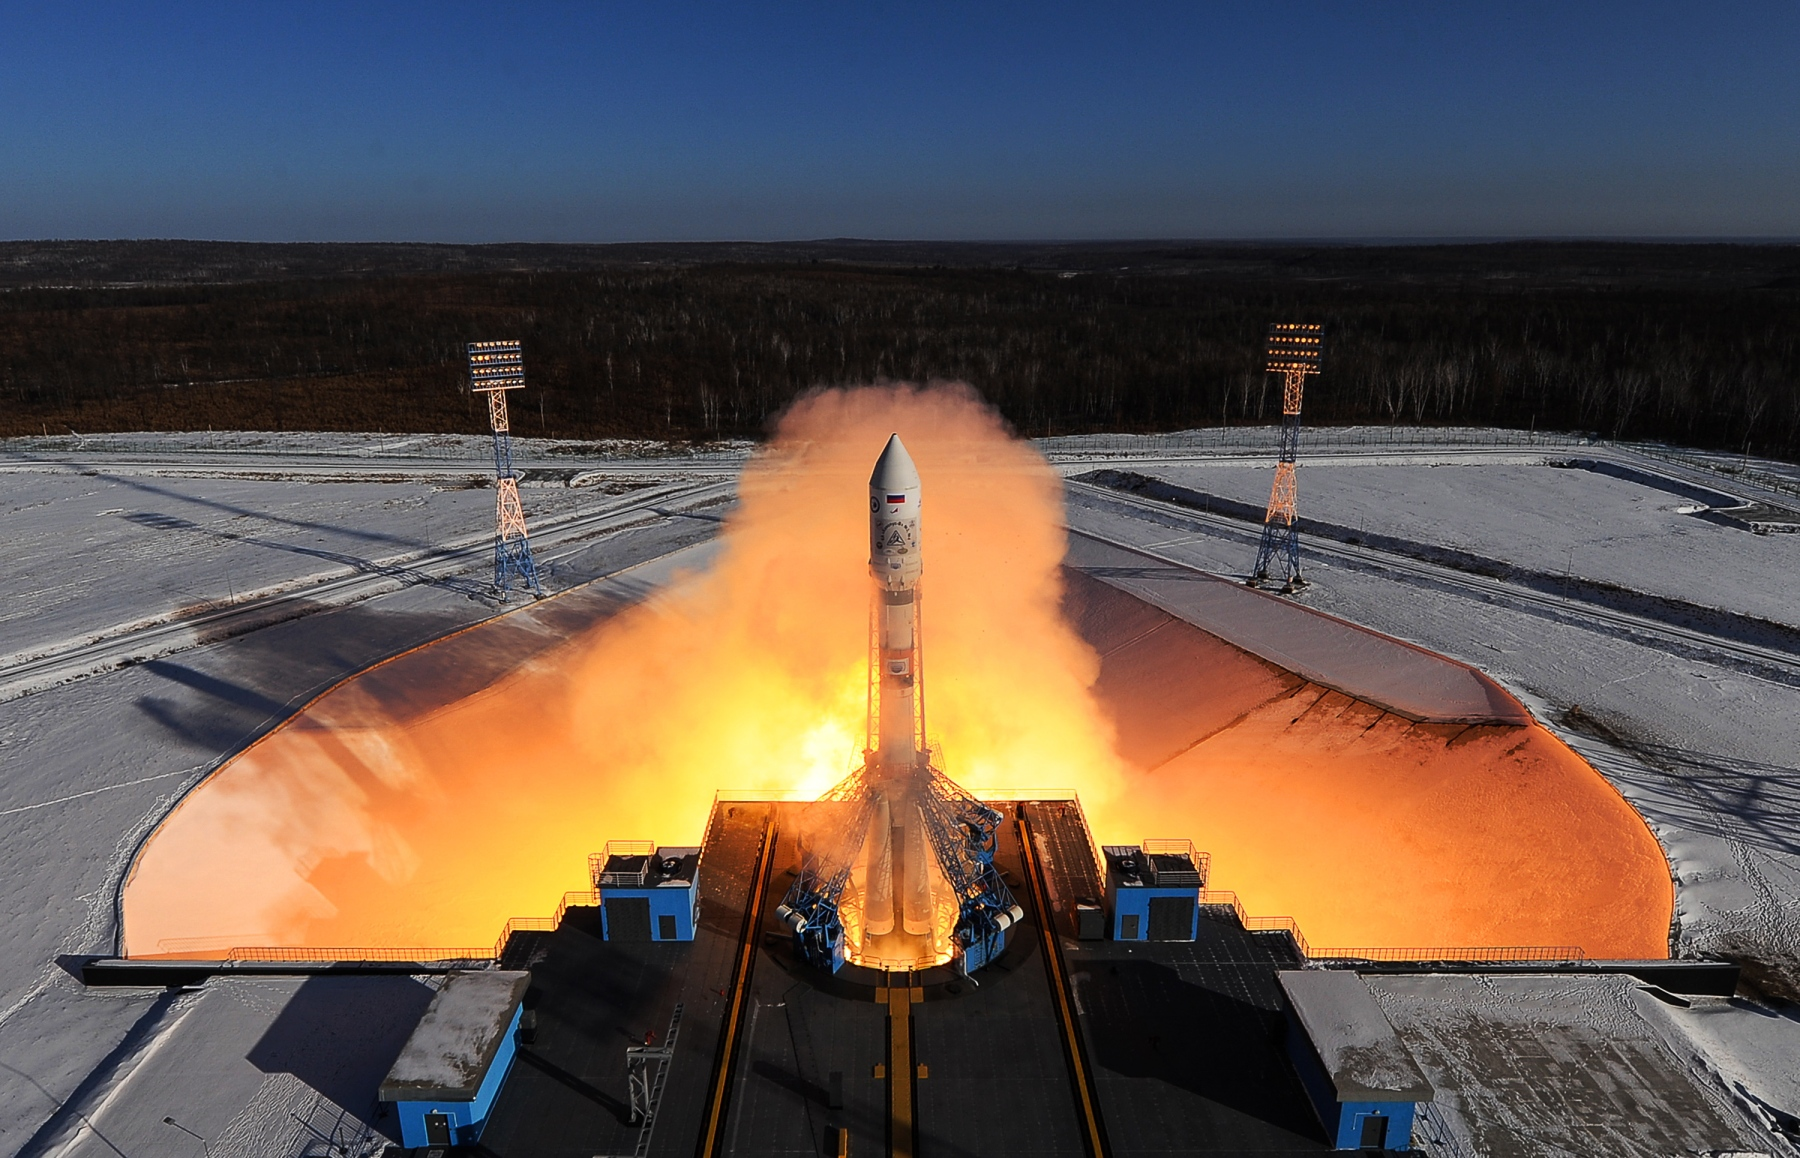 A Soyuz 2.1a rocket booster with a Frigate upper stage block launched from the Vostochny Cosmodrome. The Soyuz 2.1.a rocket booster is to deliver Russian Kanopus-V No3 and No4 remote sensing satellites and 9 small satellites to orbit. Donat Sorokin/TASS (Donat SorokinTASS via Getty Images)